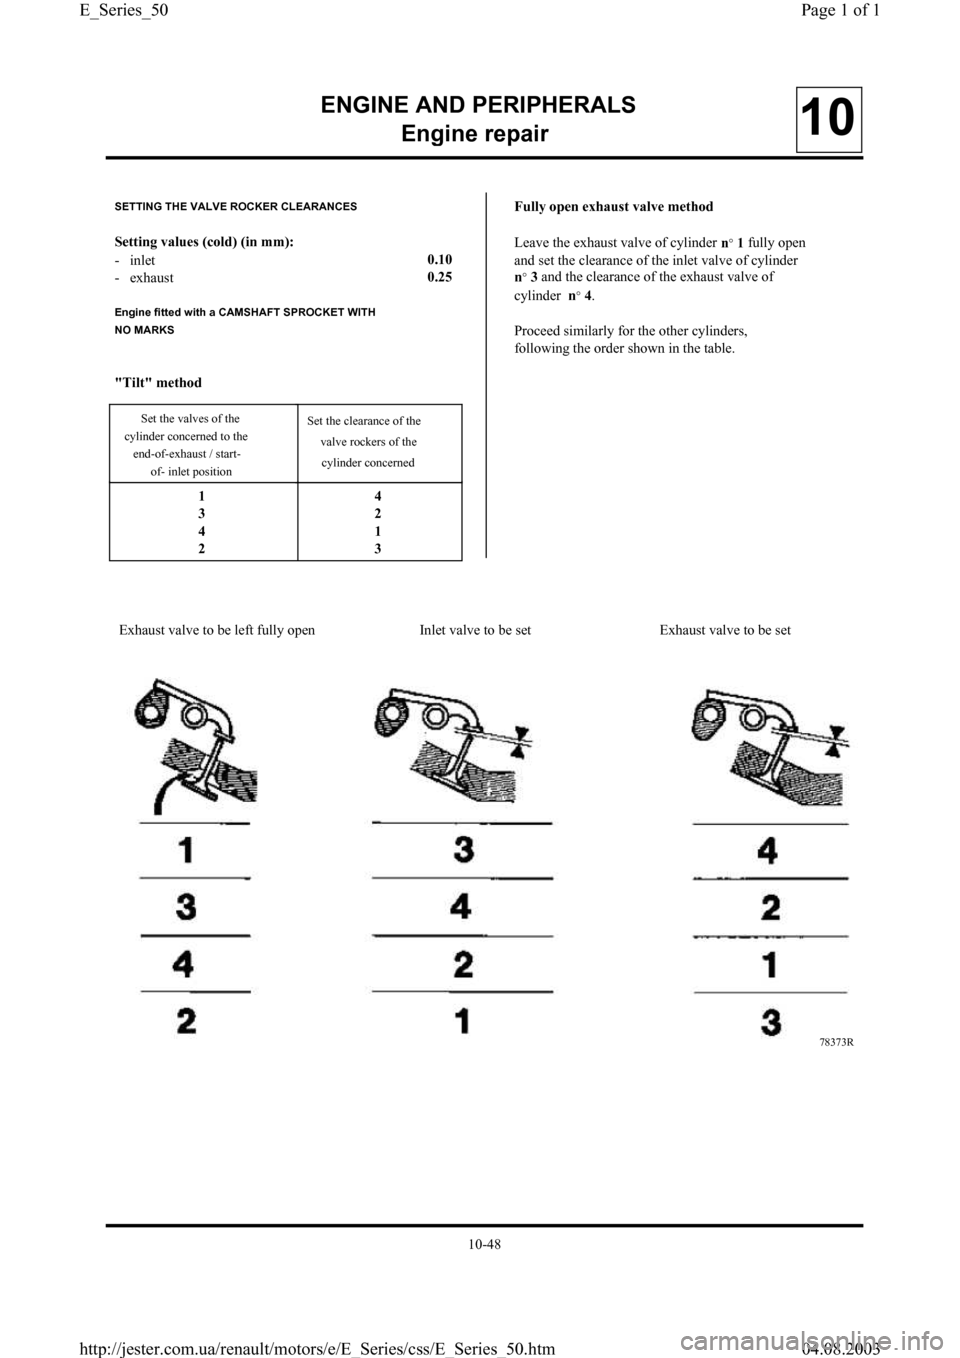 RENAULT CLIO 1997 X57 / 1.G Petrol Engines Workshop Manual, Page 50